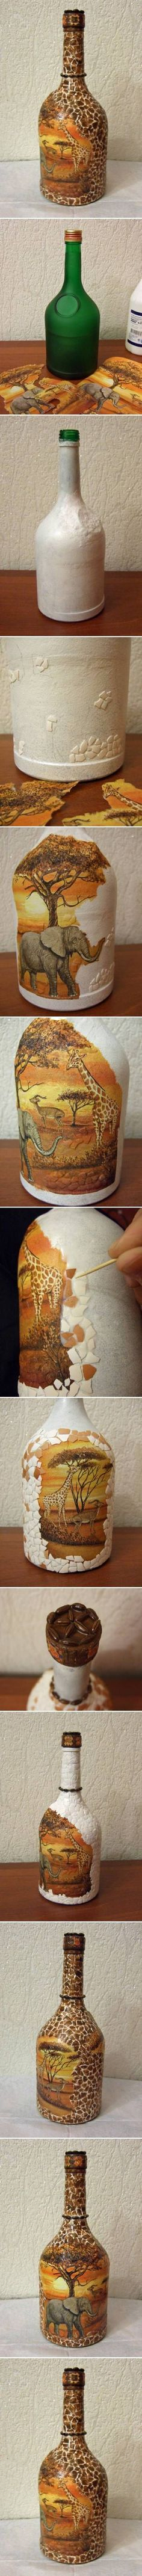 DIY African Motif Bottle diy crafts craft ideas easy crafts diy ideas diy idea diy home diy vase easy diy how to tutorial for the home crafty decor home ideas diy decorations Wine Bottle Art, Painted Wine Bottles, Diy Bottle, Wine Bottle Crafts, Bottles And Jars, Glass Jars, Cork Crafts, Diy Crafts, Eggshell Mosaic